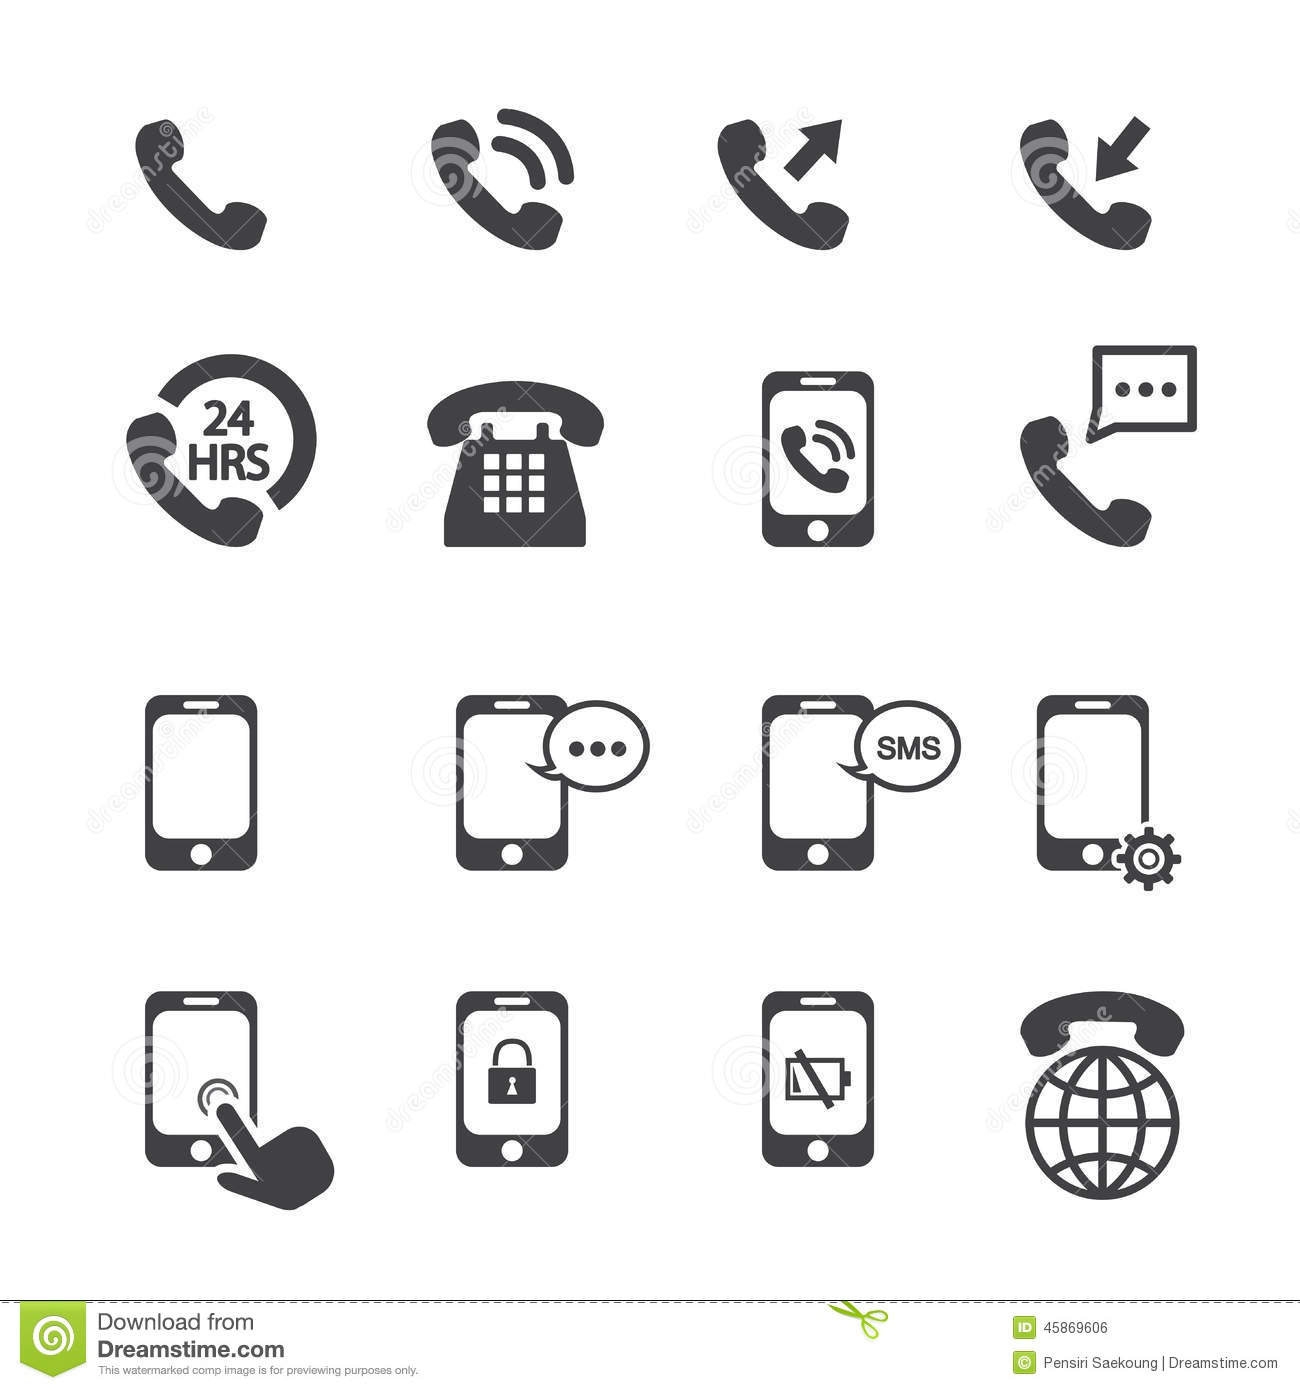 Telephone Icon For Business Card Image collections - Business Card ...